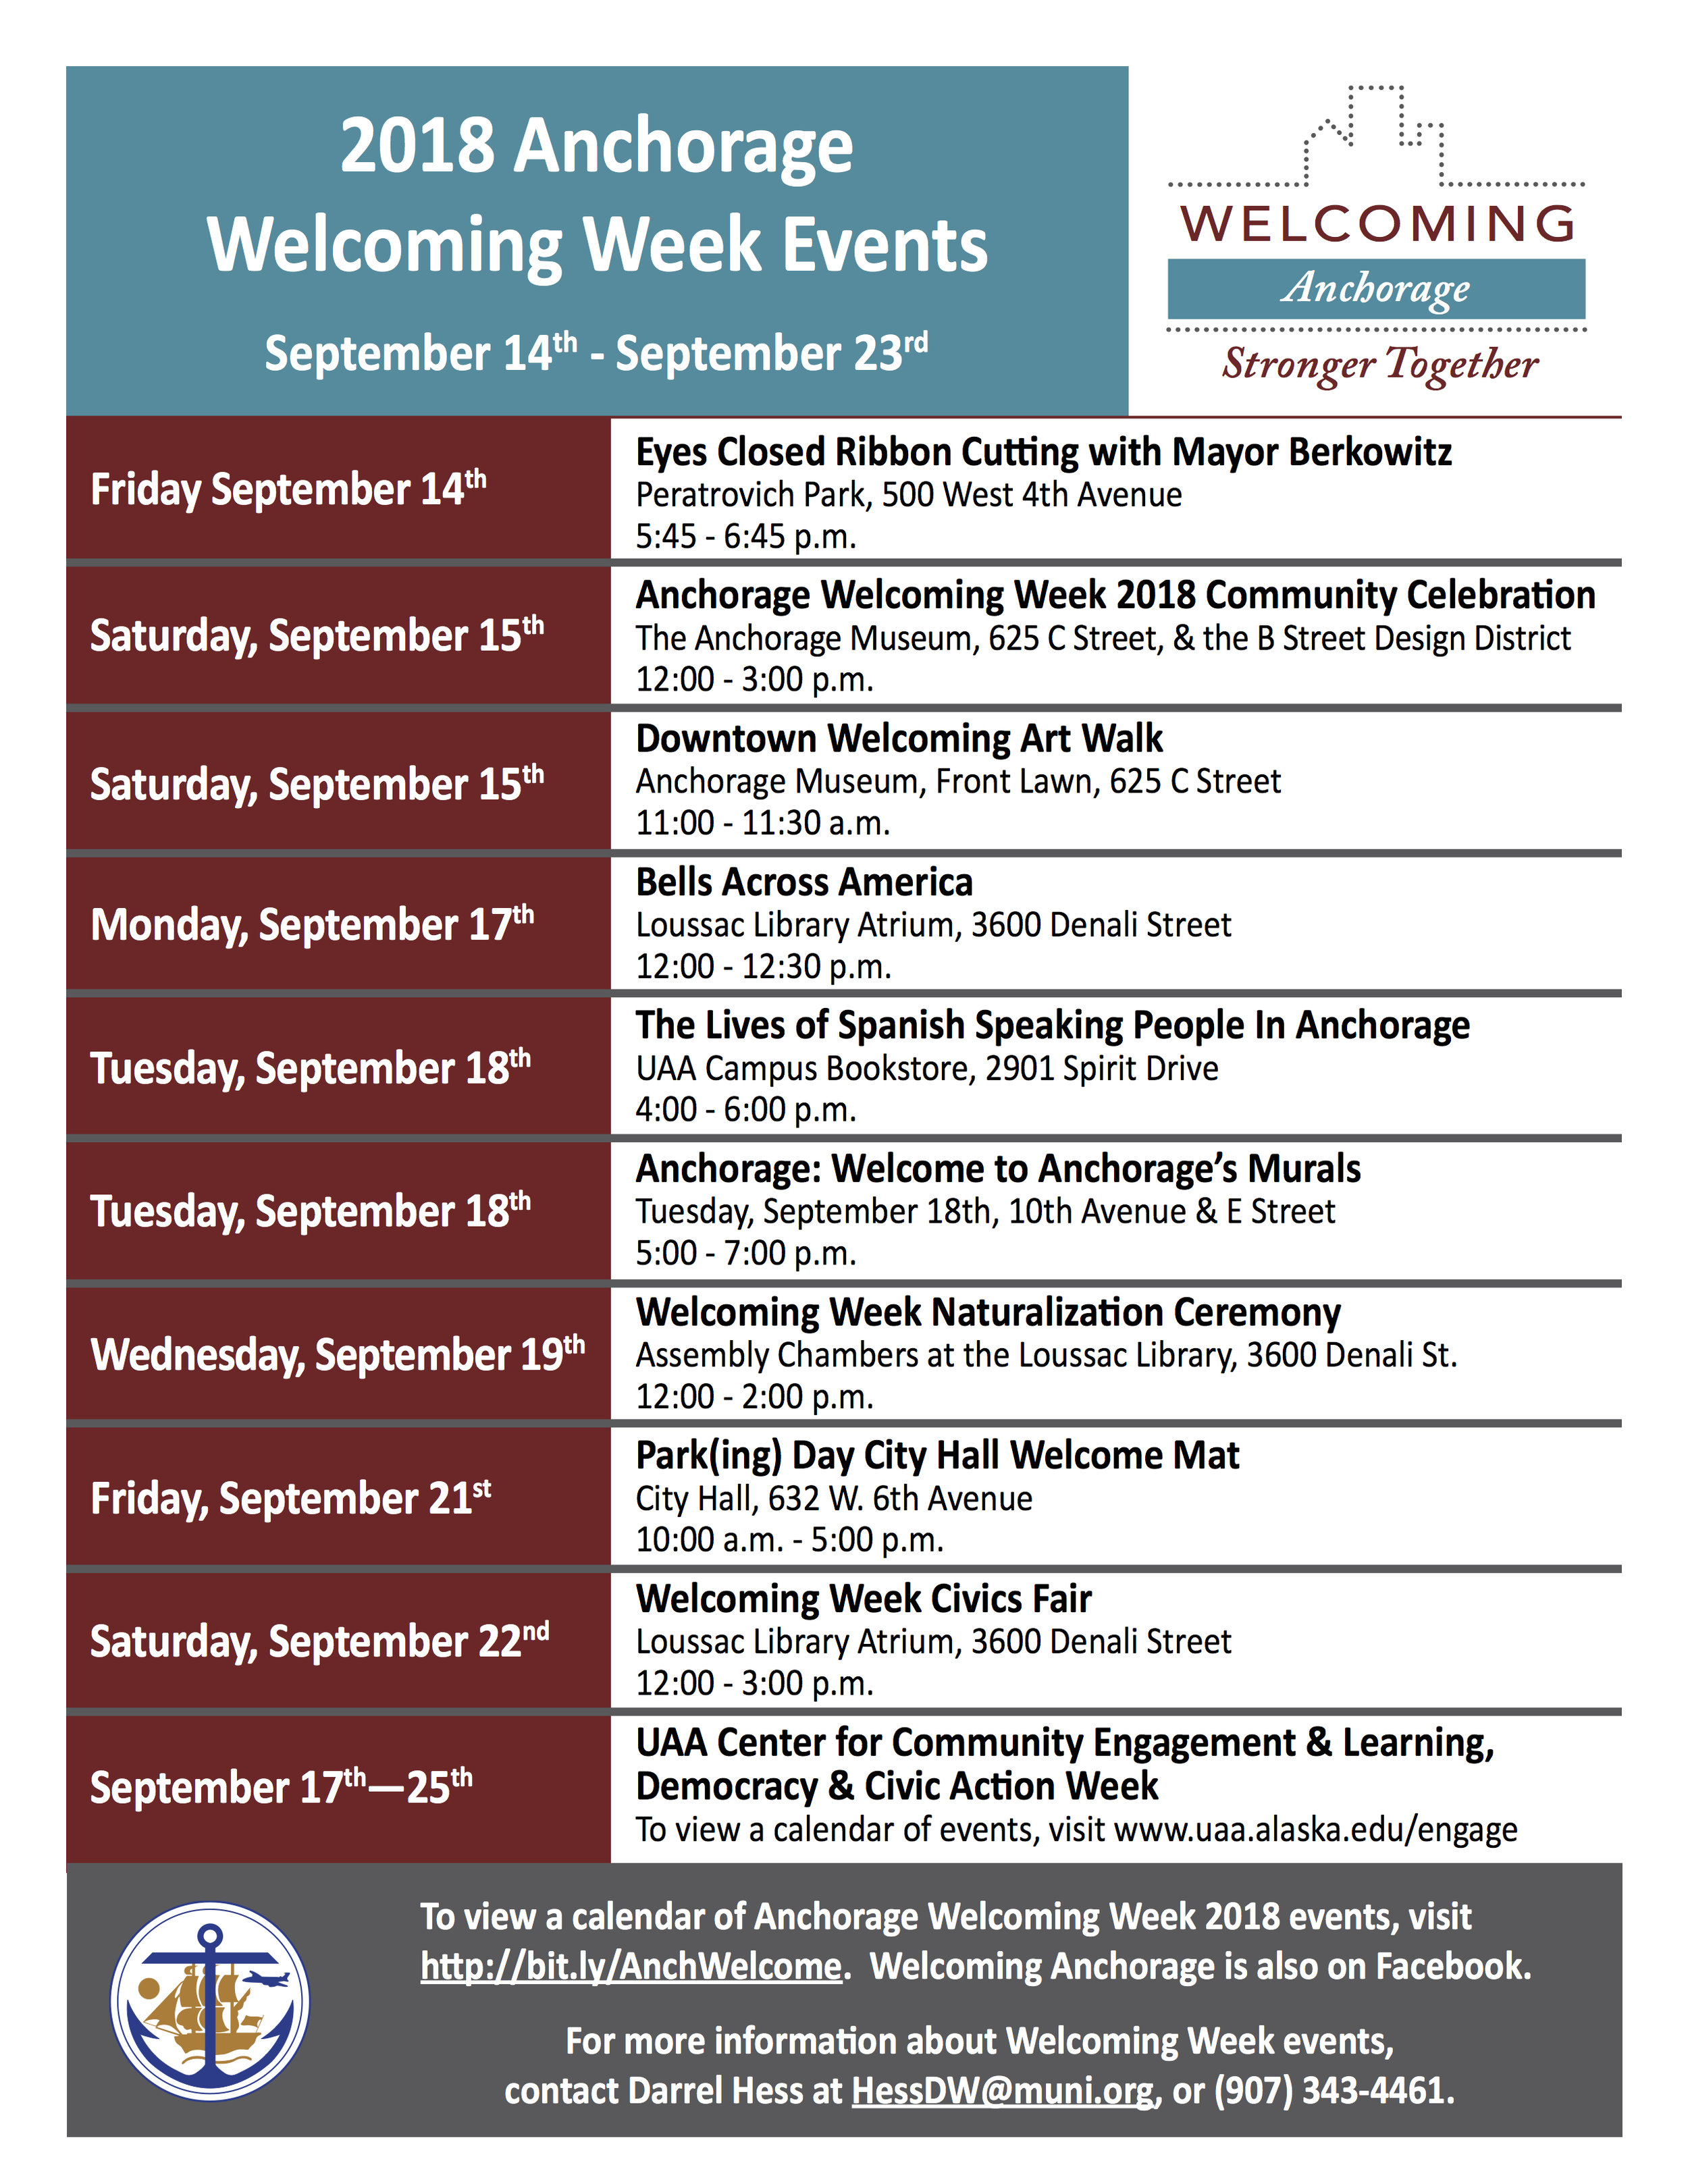 WelcomingWeek_2018v3.jpg